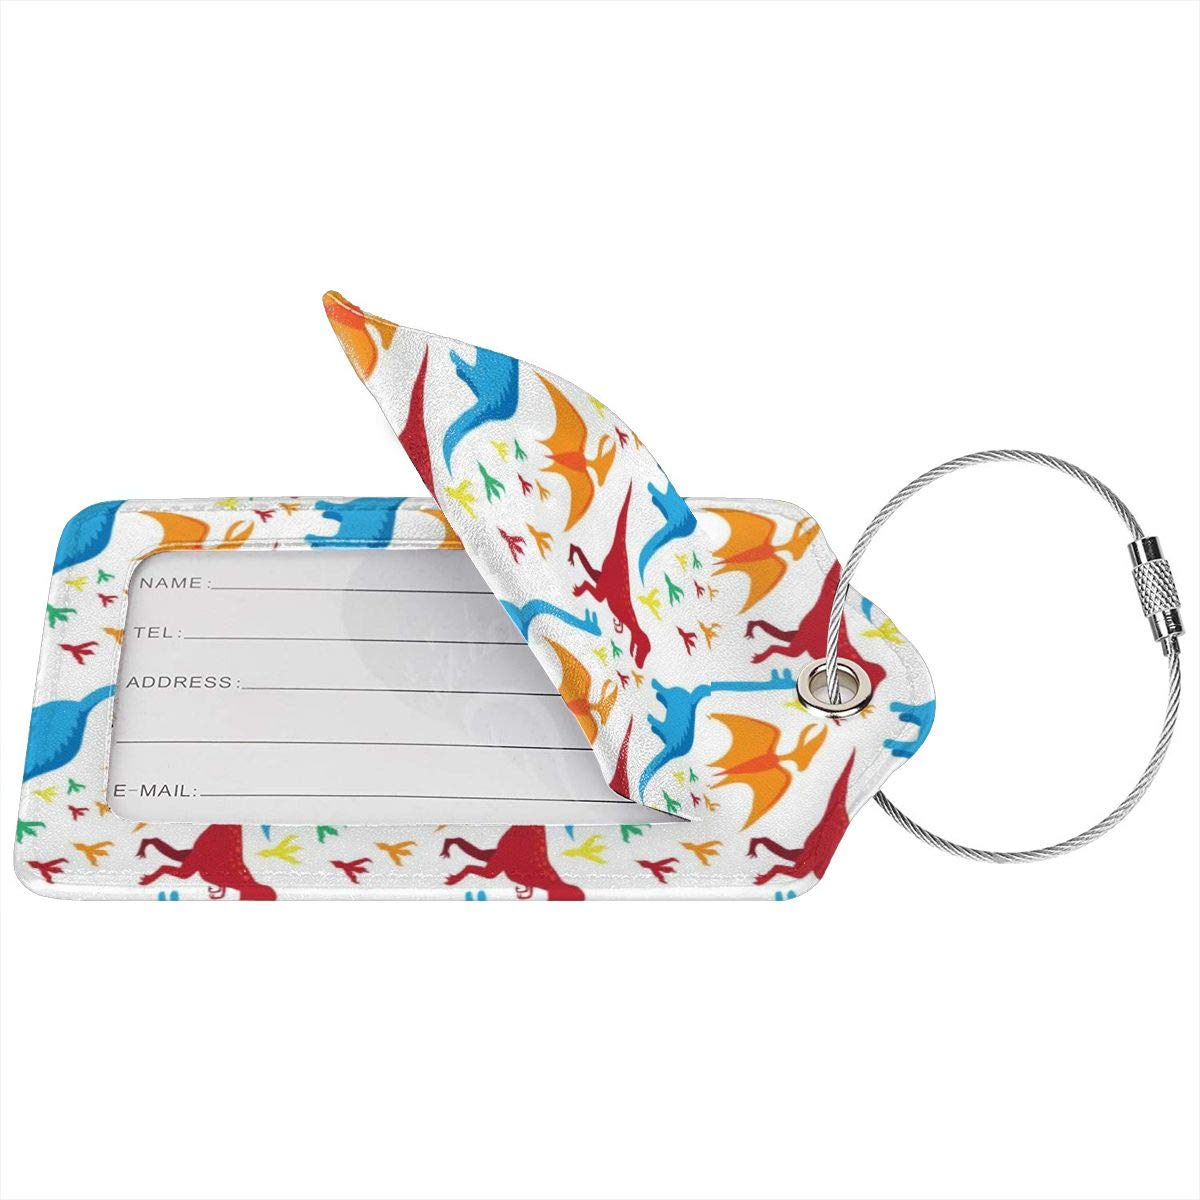 Dinasor Leather Luggage Tags Personalized Suitcase Tag With Privacy Flap